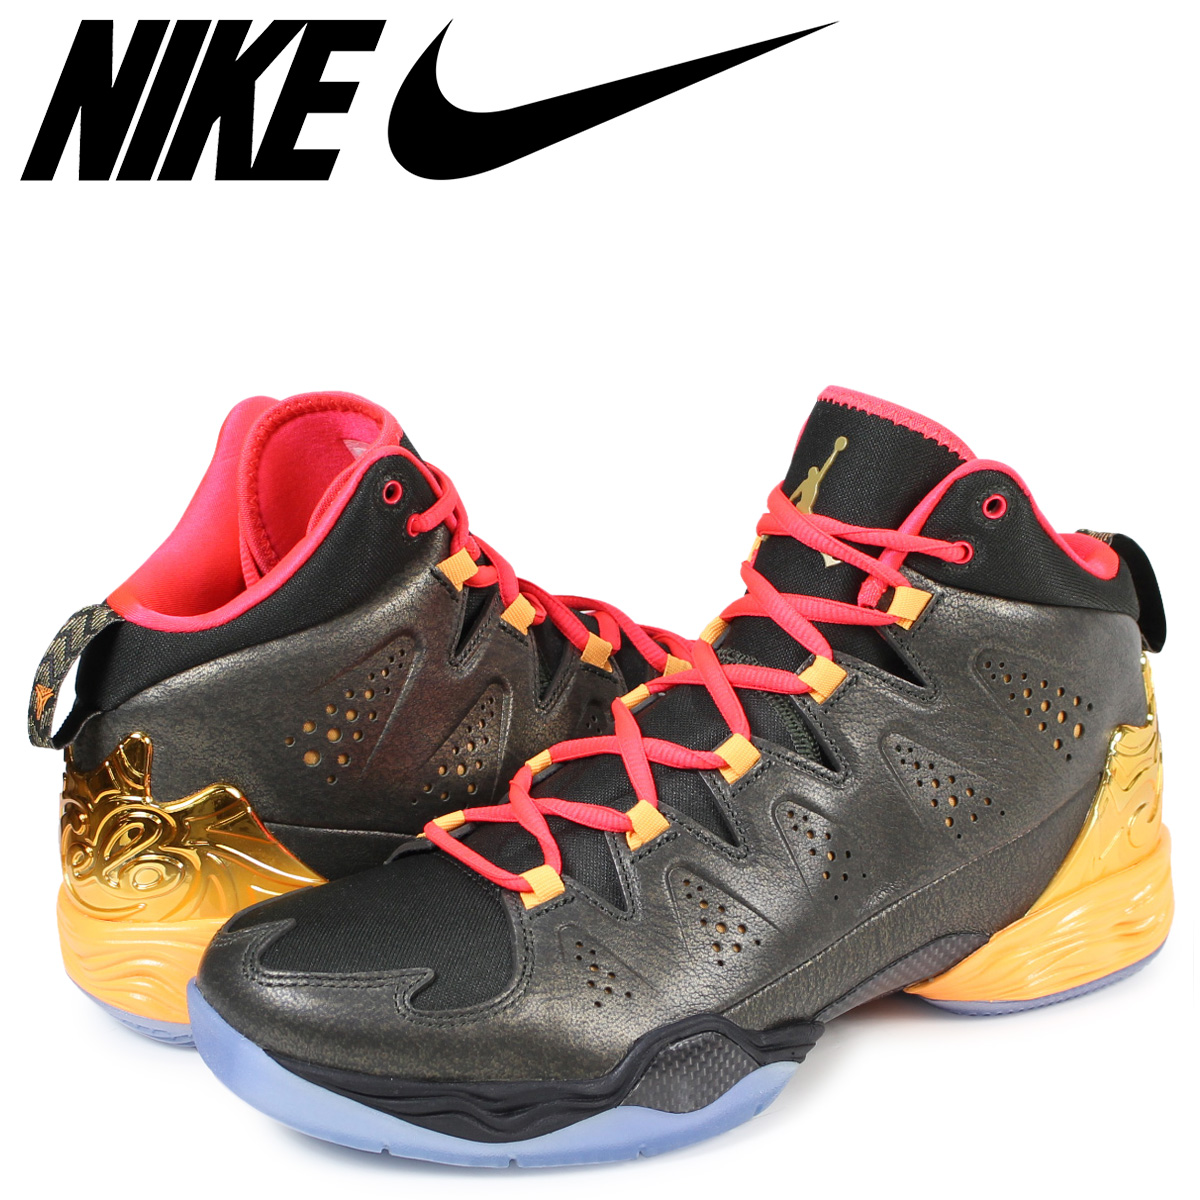 best sneakers d43a9 76a44 ... promo code for nike jordan melo nike air jordan sneakers m10 jordan  melo 656325 323 black